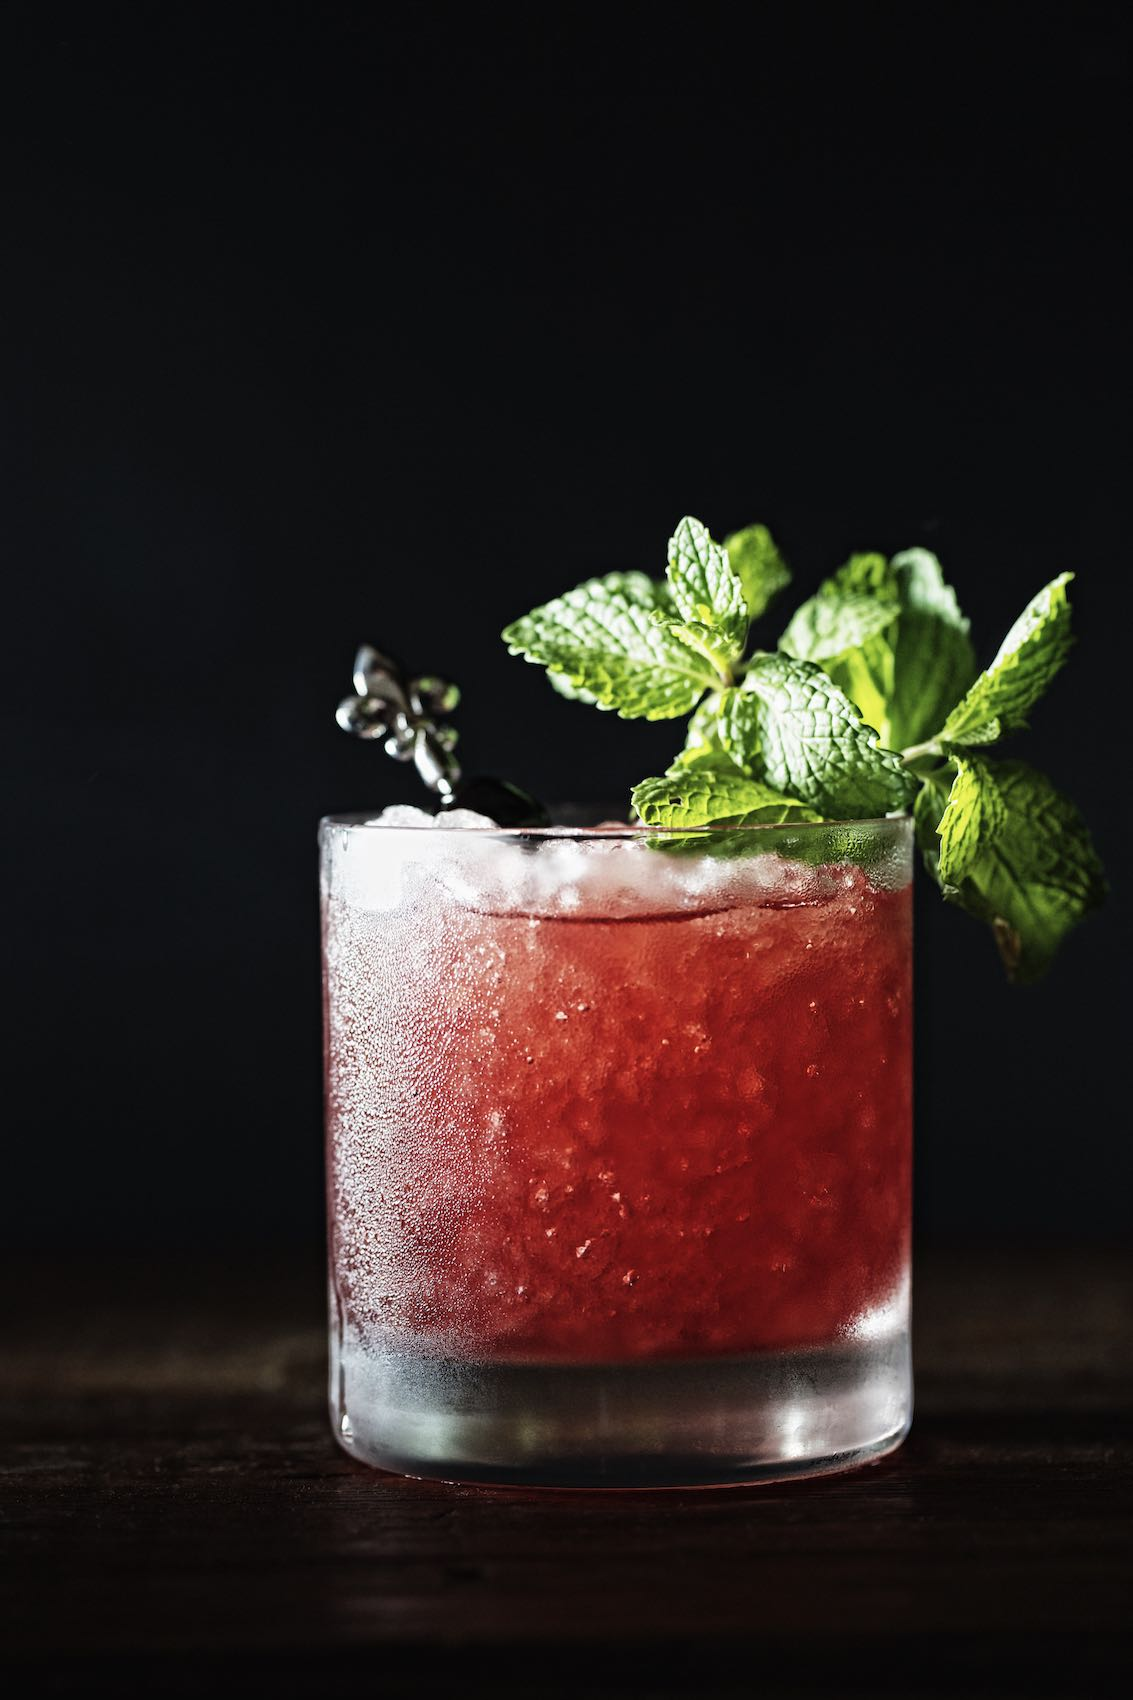 Jody Horton Photography - Iced red cocktail with mint garnish.